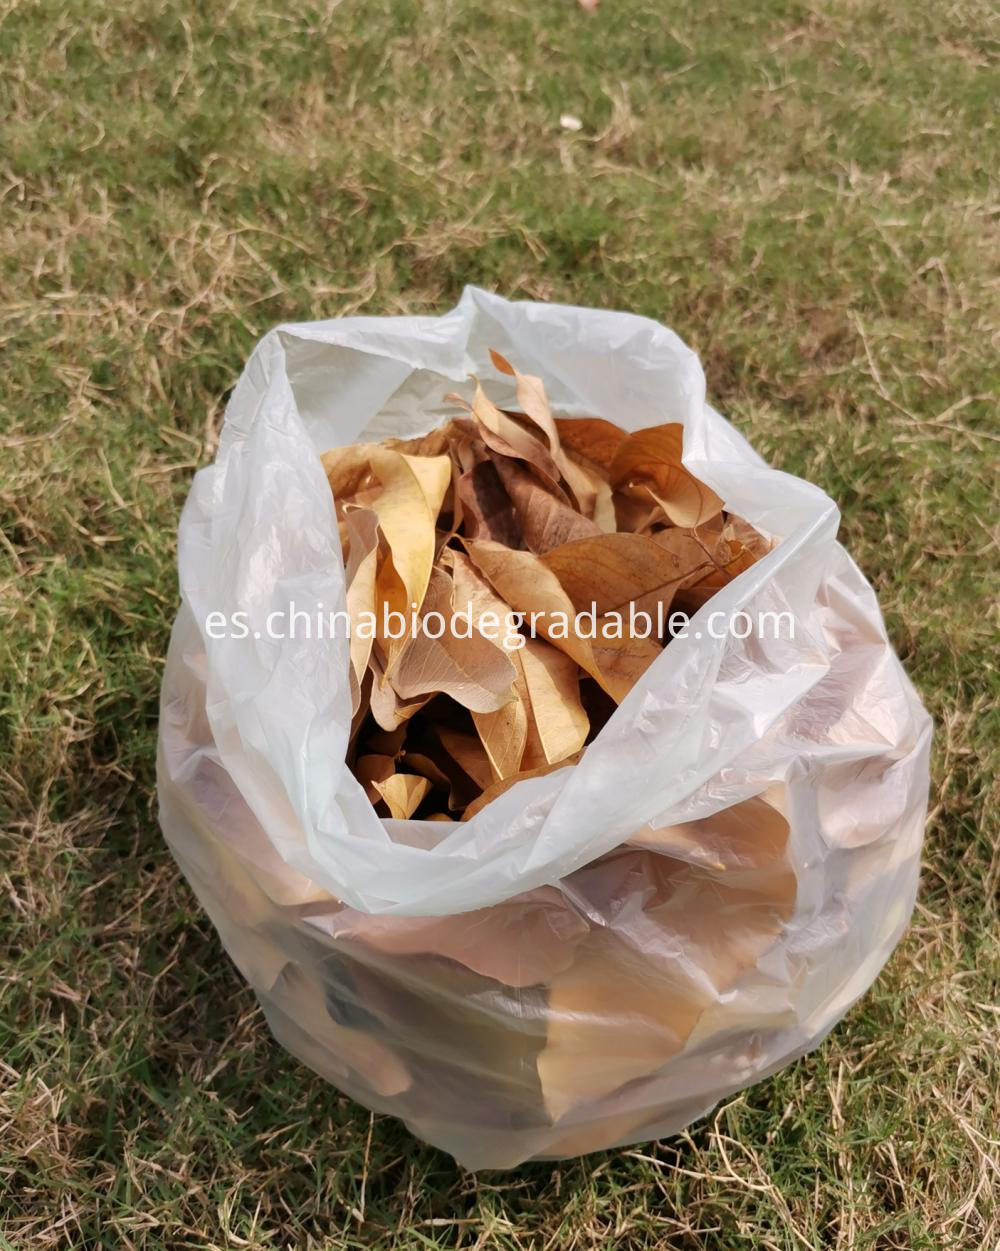 EN13432/BPI Certified Biodegradable Food Bin Bags